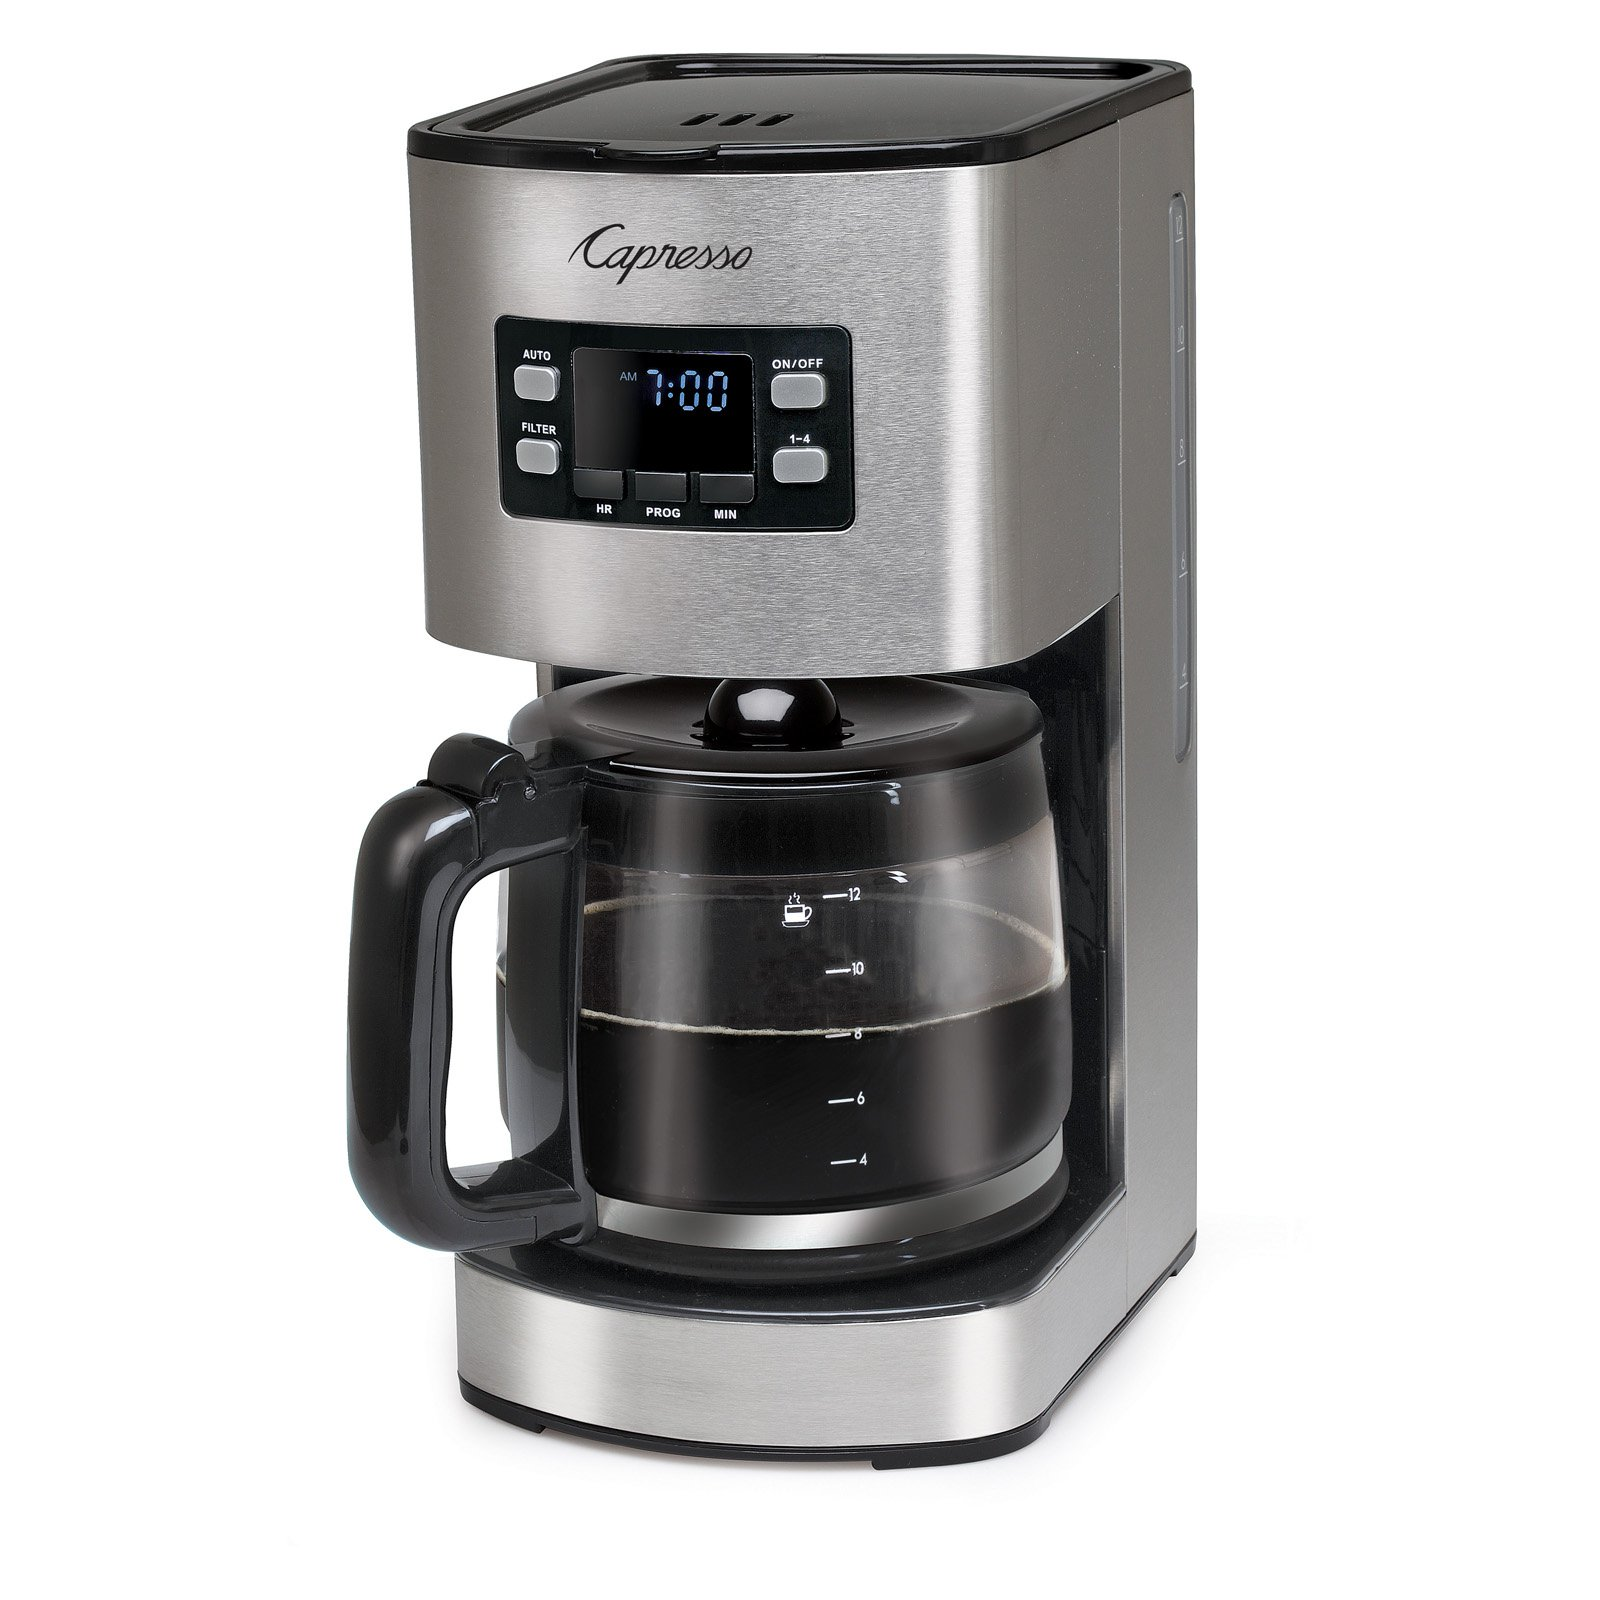 Capresso SG300 S/S Coffee Maker w/Glass Carafe